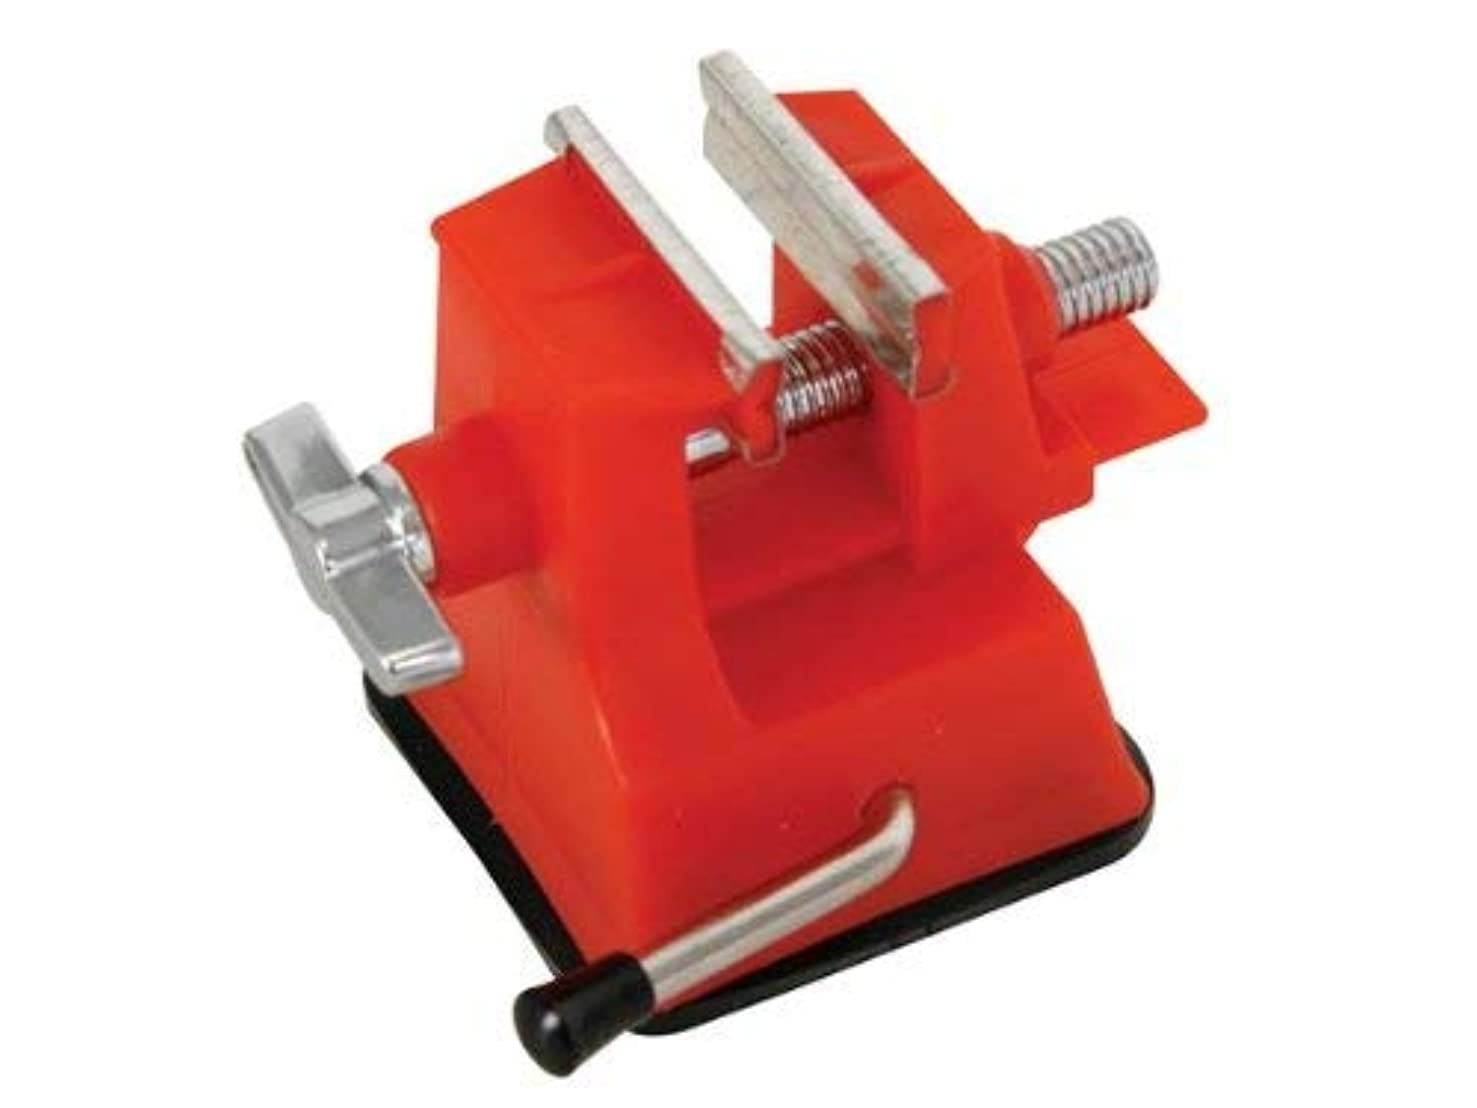 増幅するポンペイスペードVelleman VTTV3N Mini Table Vise with Standard Head [並行輸入品]